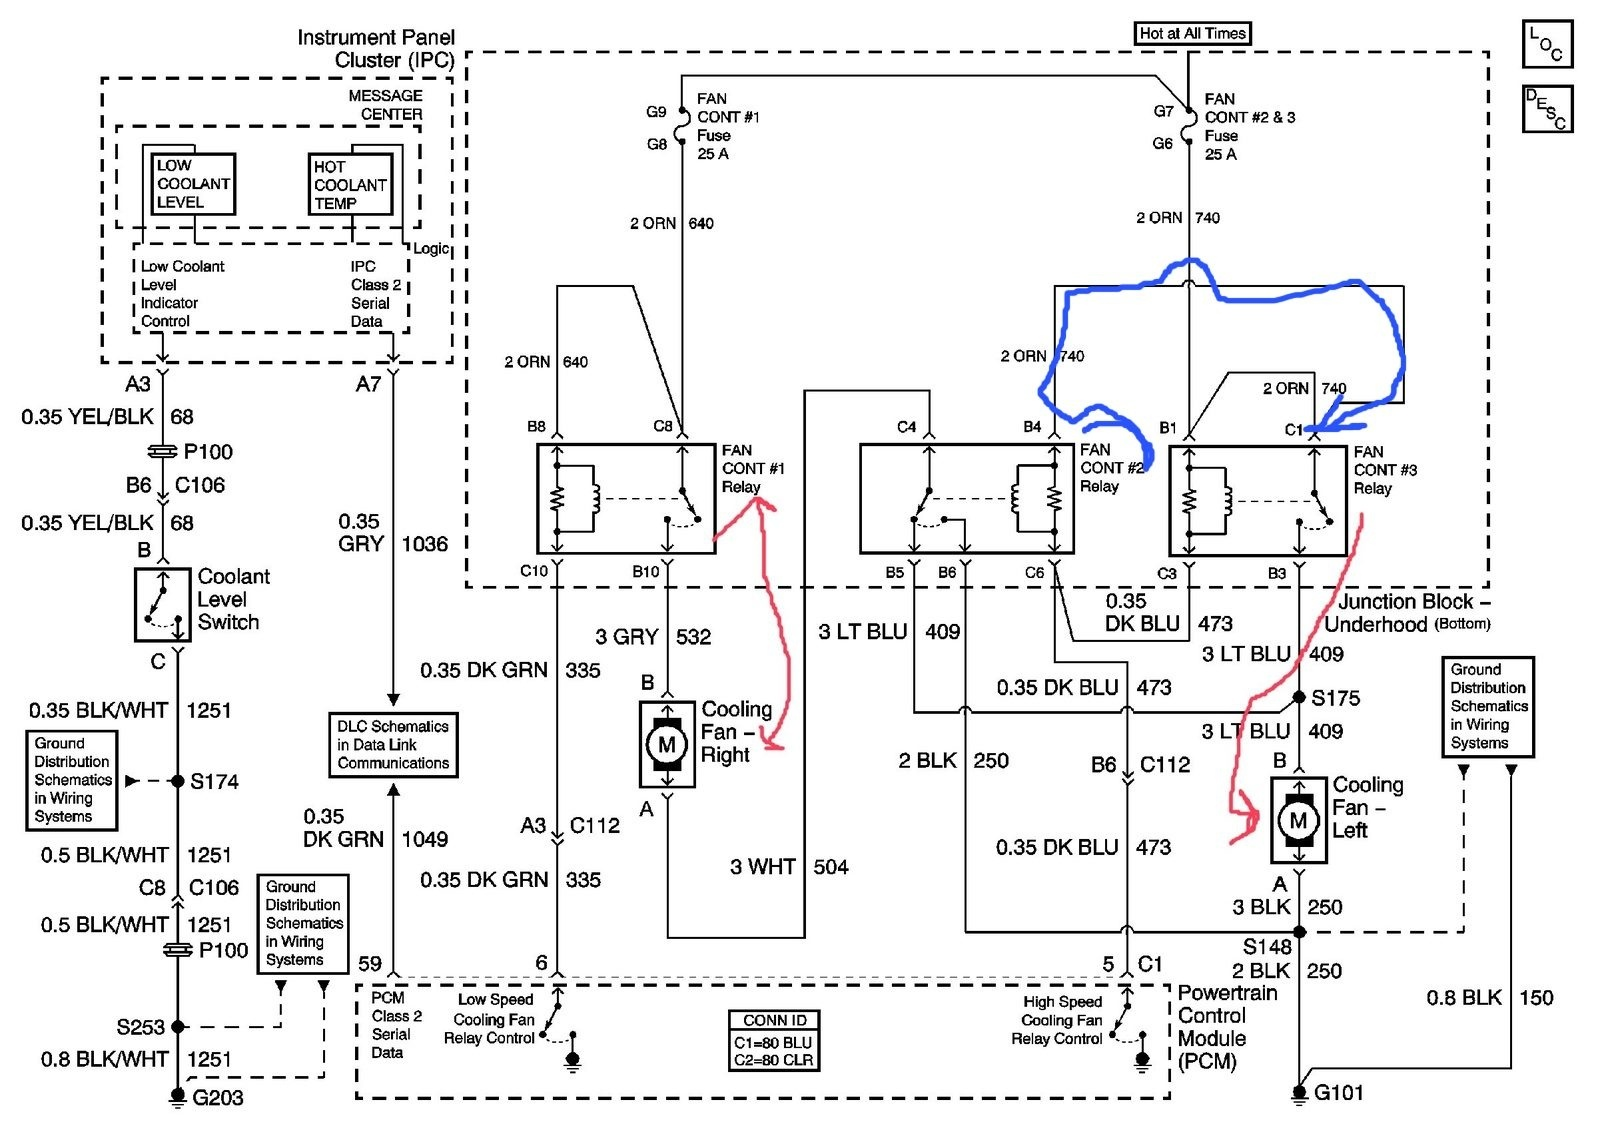 Dodge Ram 1500 2005 Electrical Wiring Diagram furthermore Honda Odyssey 2006 Horn Relay Location furthermore 1361889 Vacuum Line R R On 1988 F150 302 5 0l moreover Suzuki Sx4 Engine Diagram besides 4g18y Audi A4 Quattro Find Fuse Panel Diagram. on 2006 vw jetta air conditioner wiring diagram